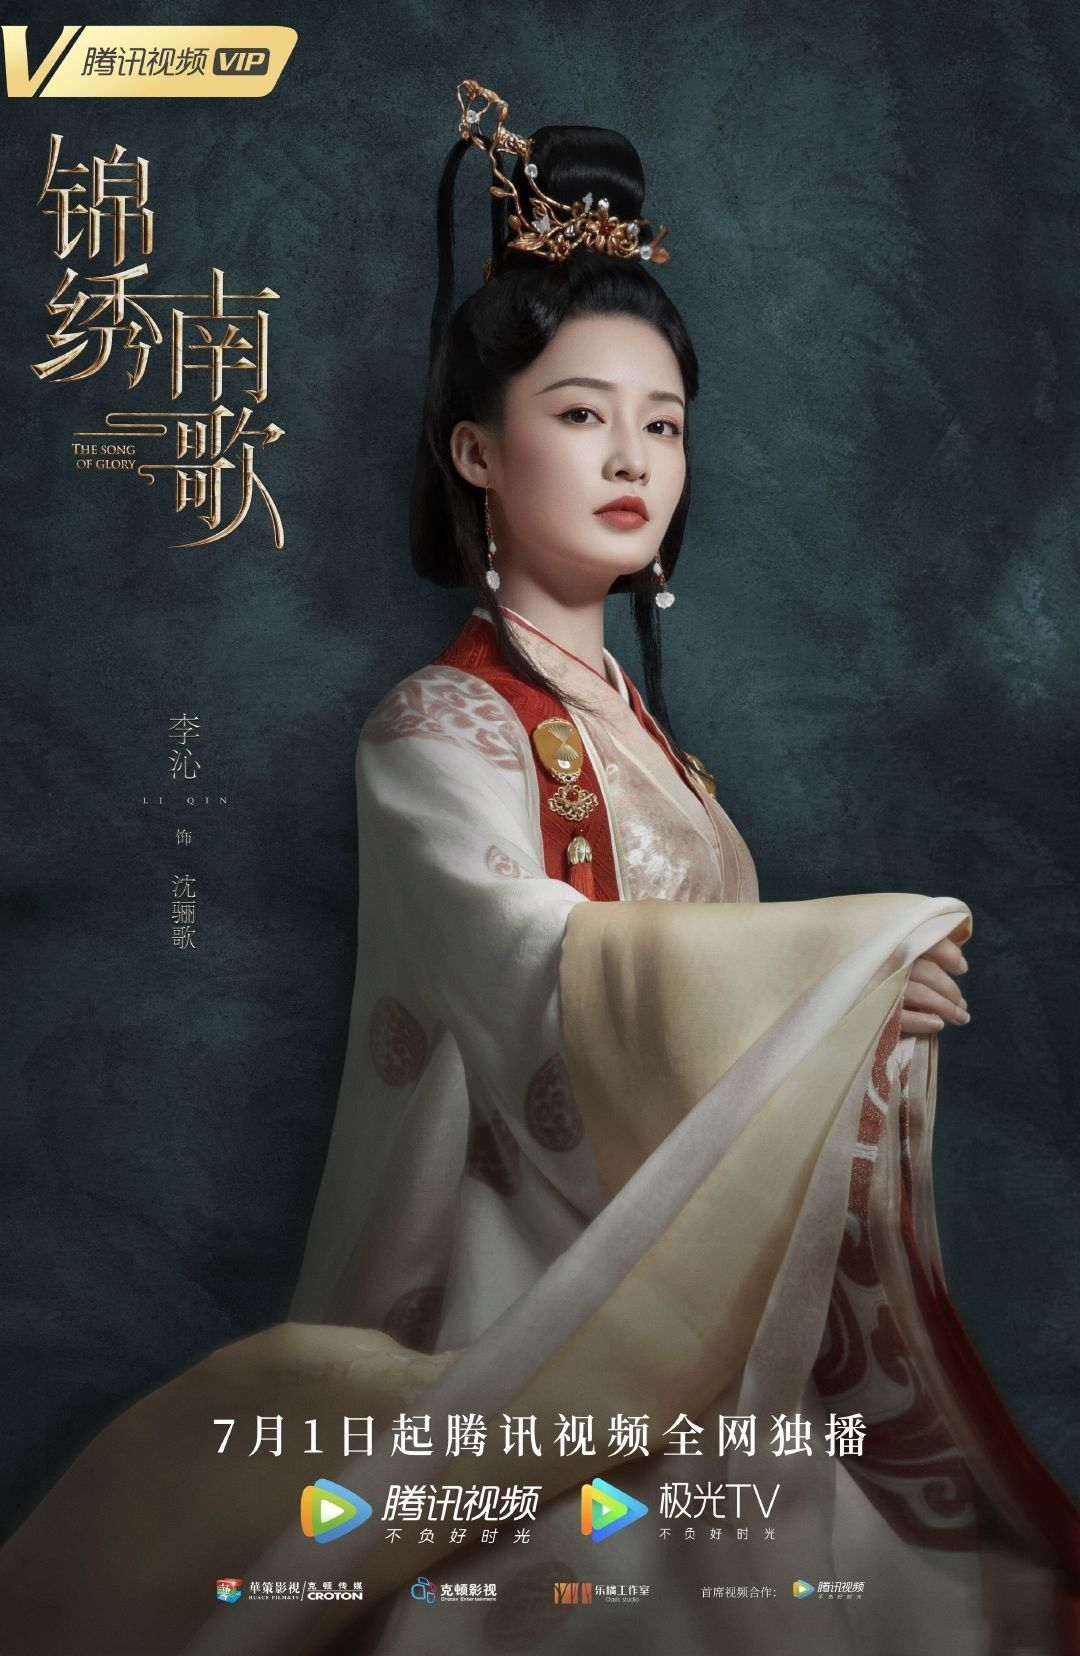 The Song of Glory in 2020   Princess weiyoung, Songs, Chinese actress